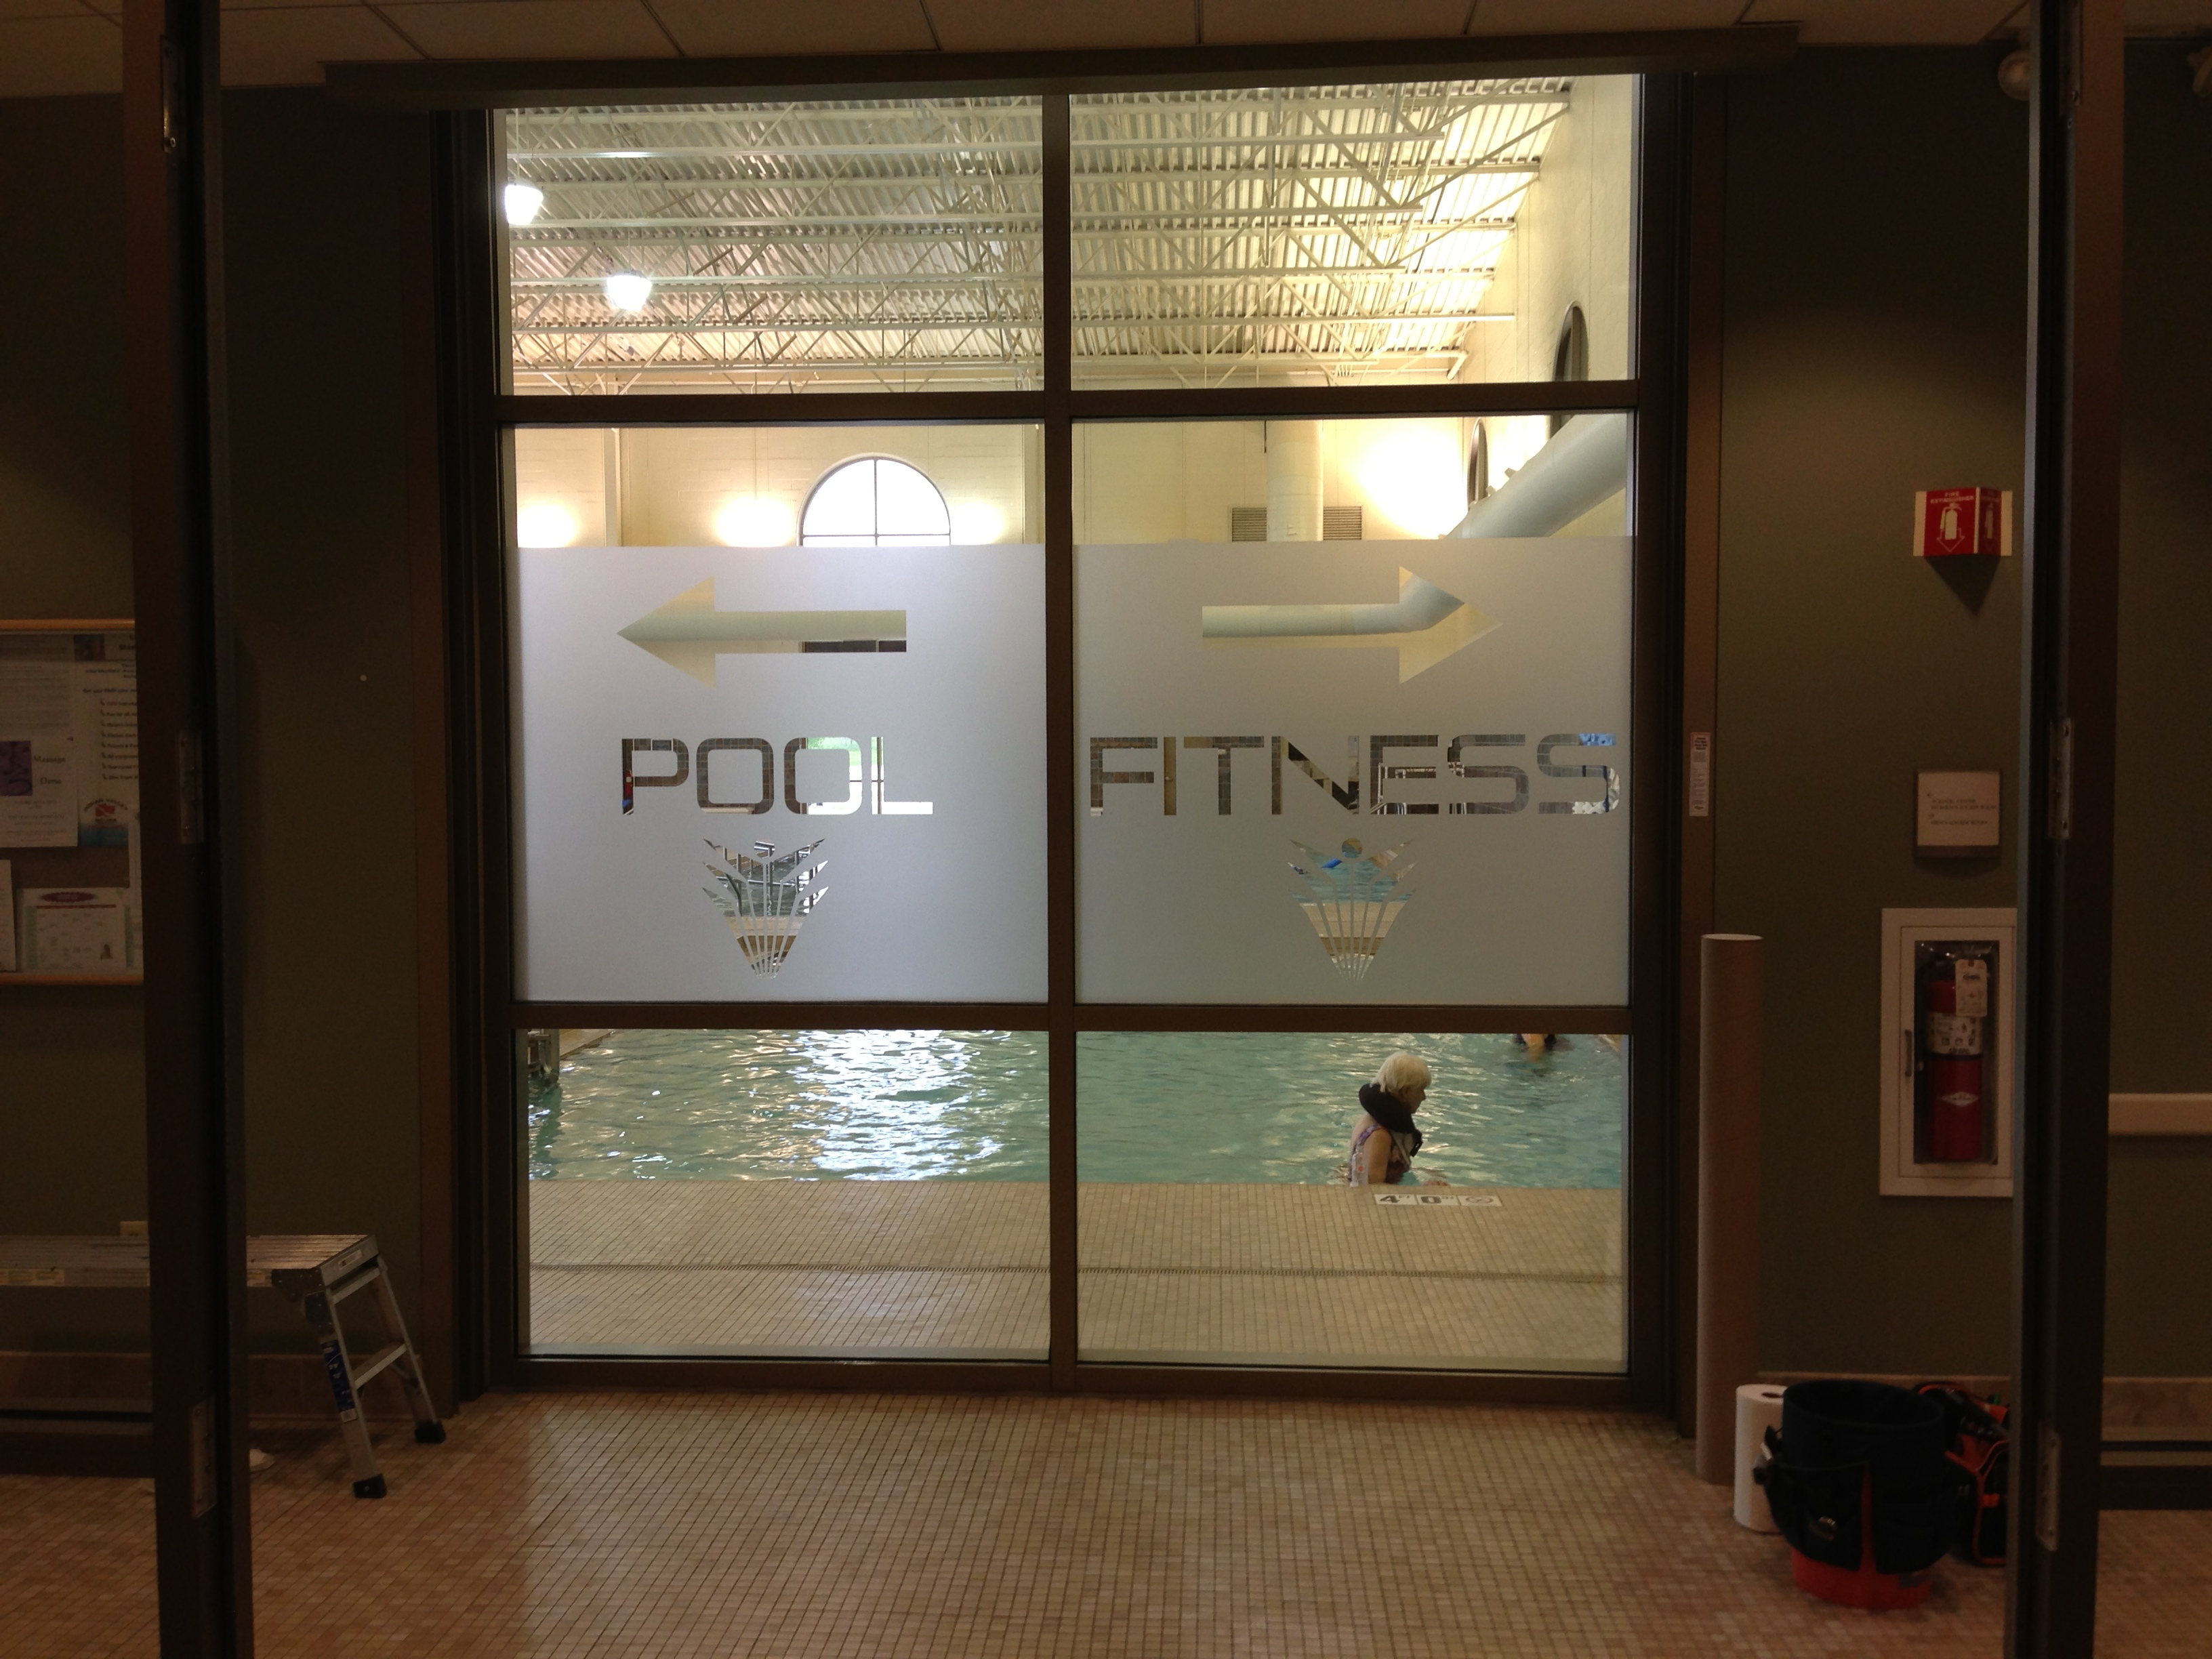 M Etched Frosted Vinyl Window Graphic For Fitness Center - Vinyl etched glass window decals